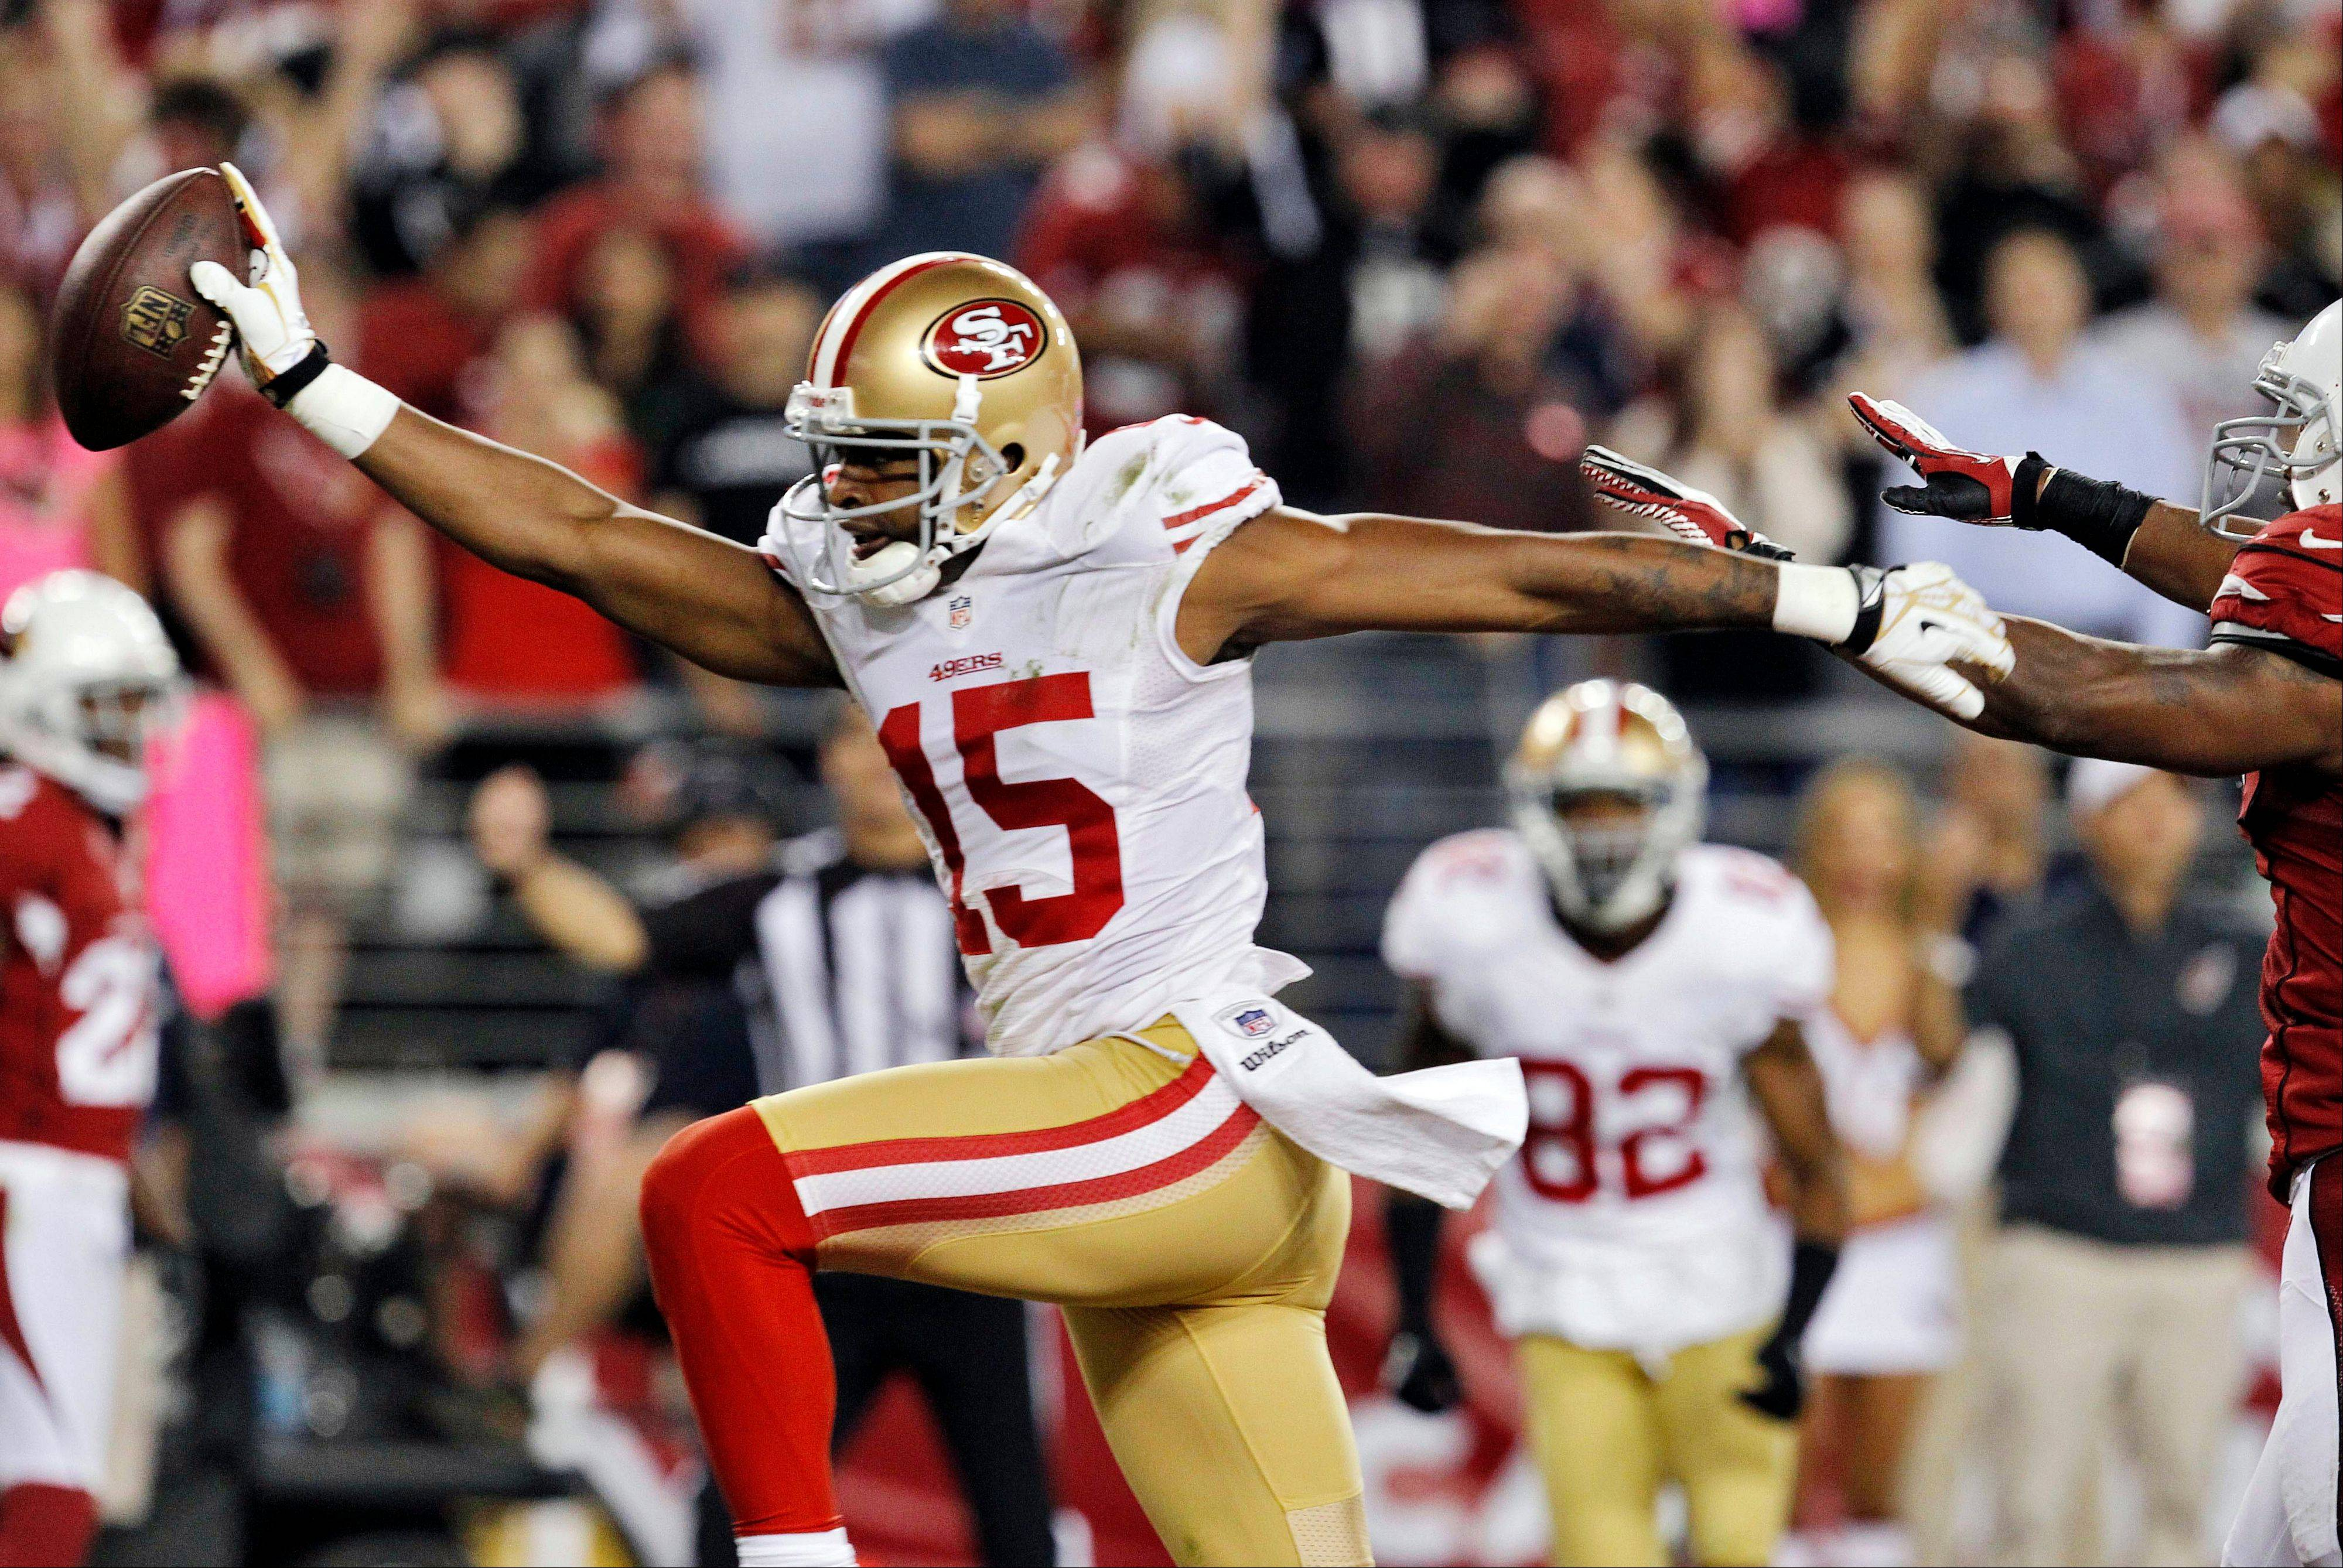 San Francisco 49ers wide receiver Michael Crabtree scores a touchdown against the Arizona Cardinals during the first half Monday in Glendale, Ariz.